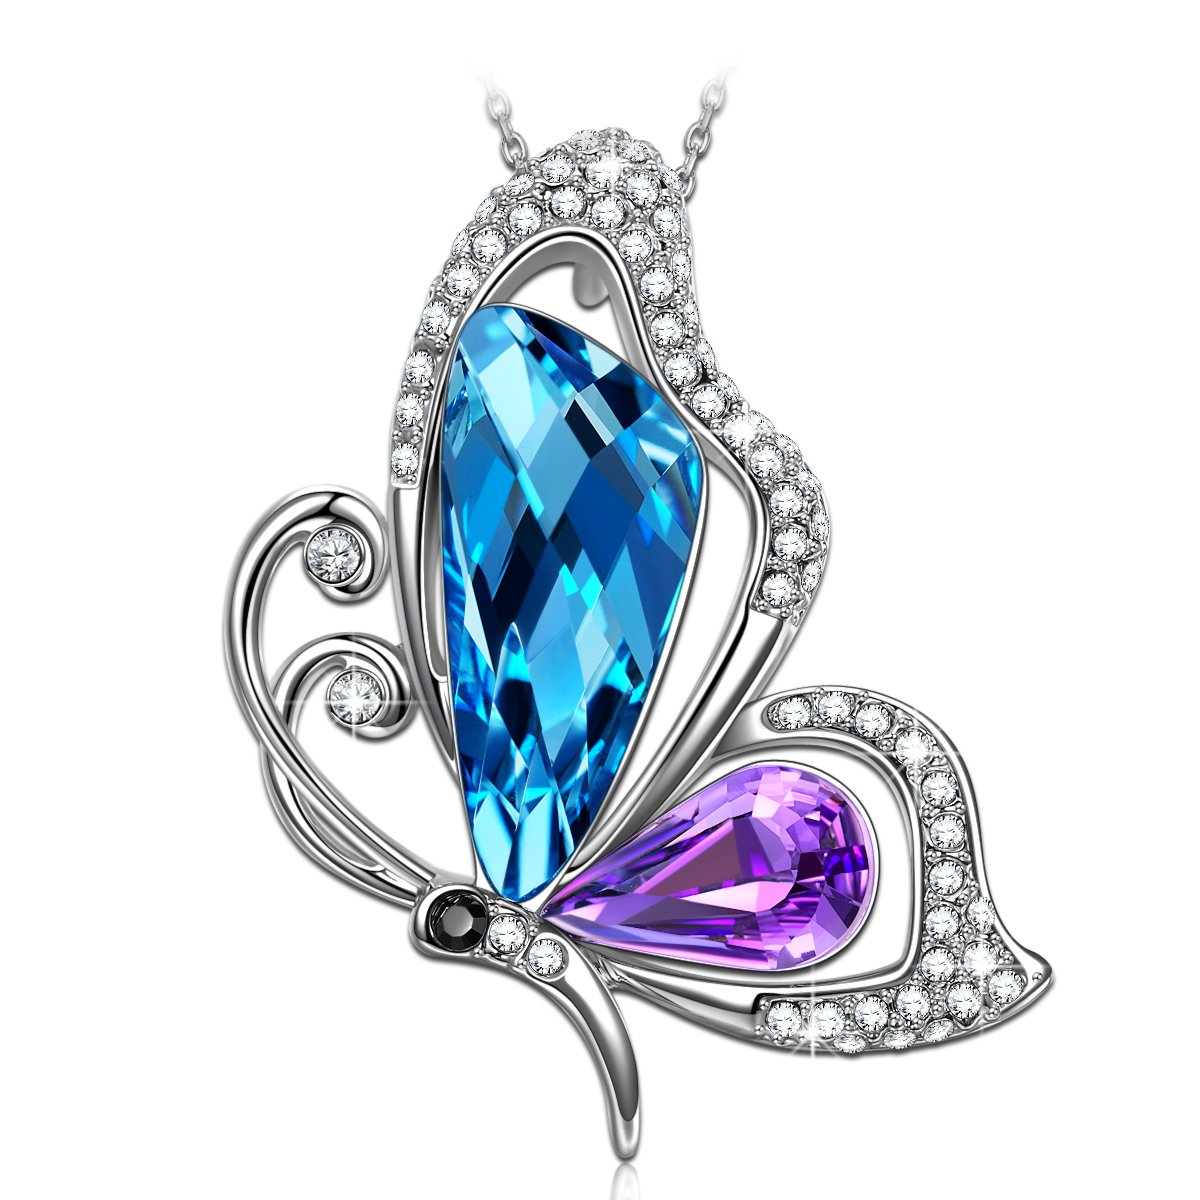 SIVERY 'Butterfly Kiss' Jewelry Women Necklace Pendant with Blue Green Swarovski Crystal, Jewelry for Women Gifts for Mom